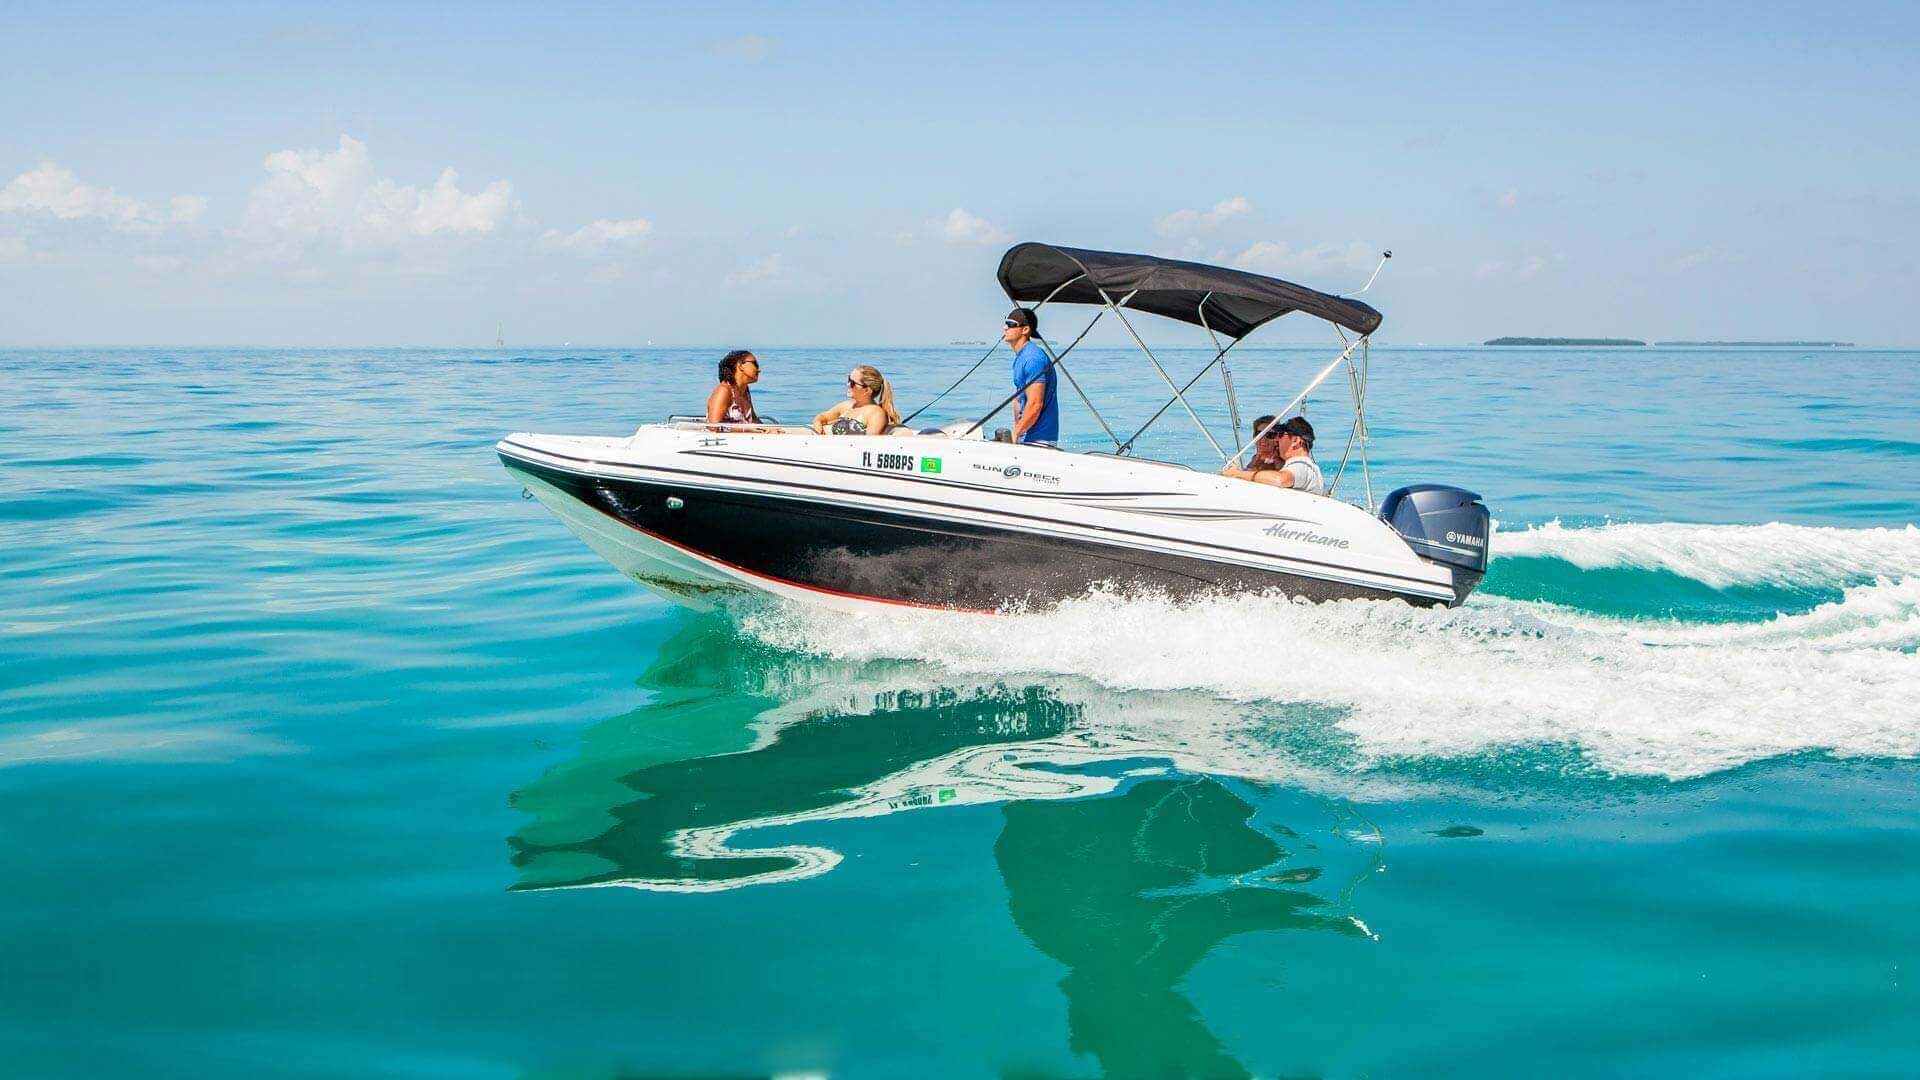 Tourists onboard a boat rental in Key West